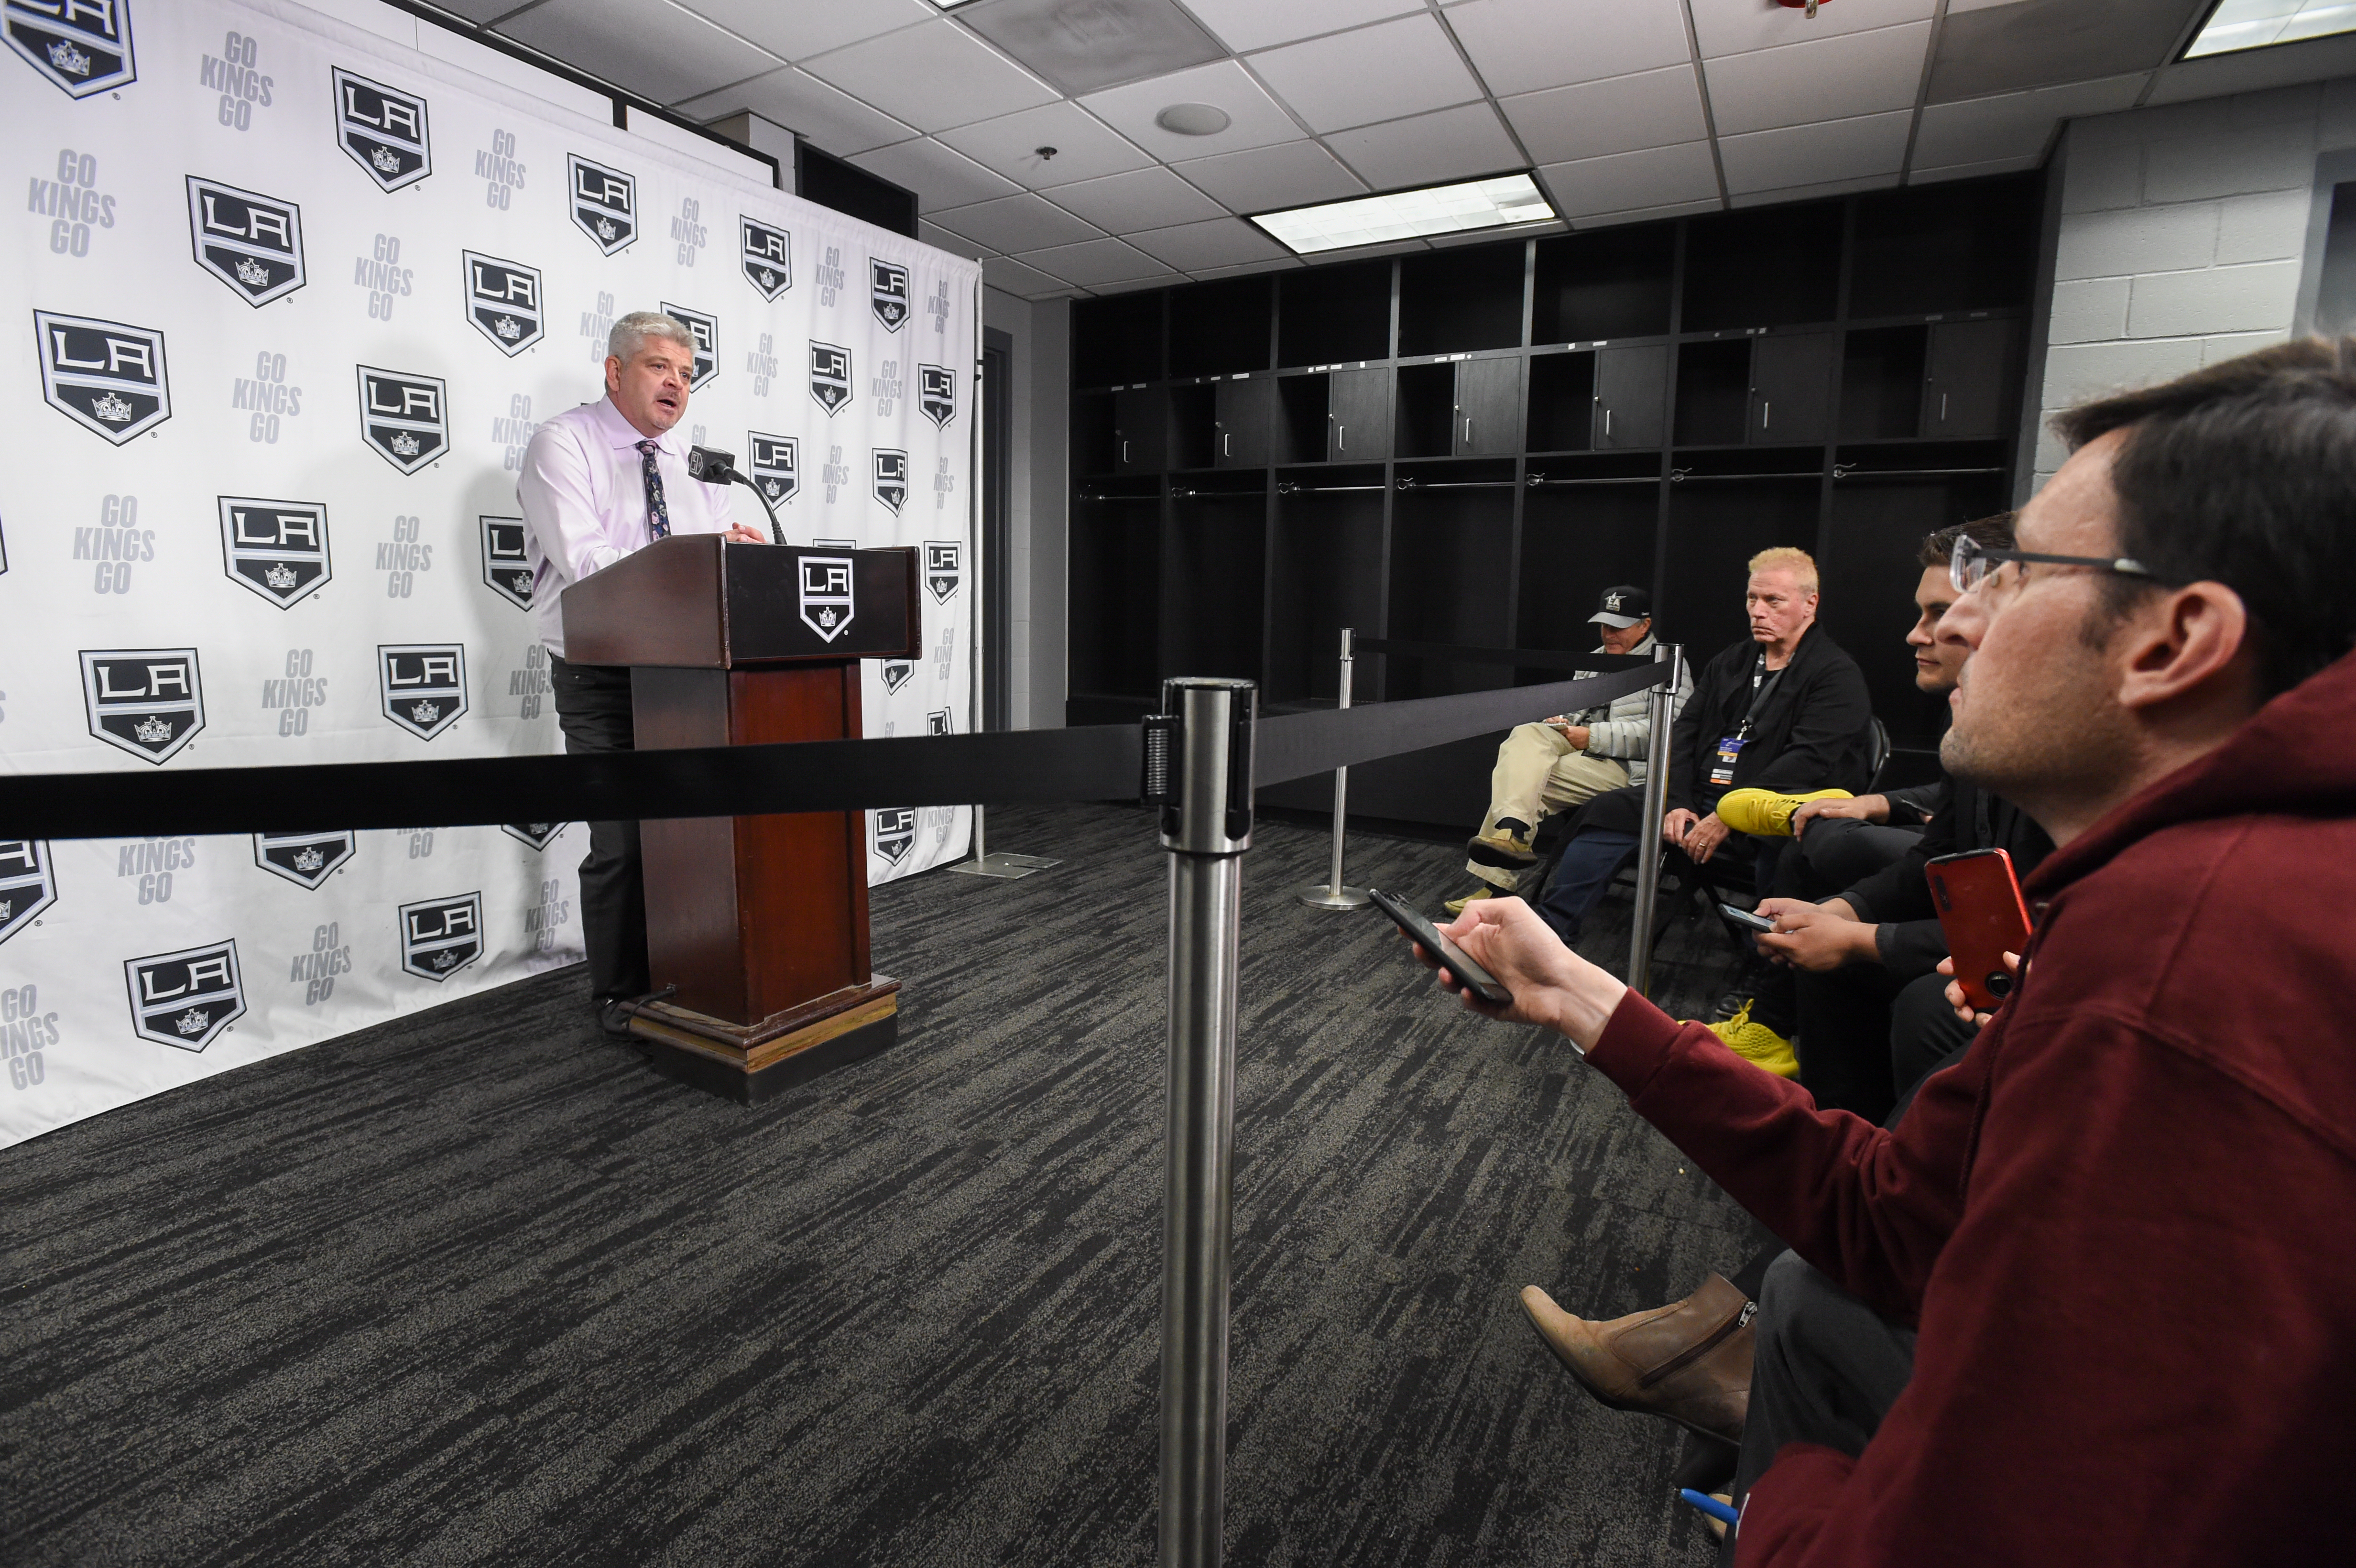 LOS ANGELES, CA - MARCH 11: Los Angeles Kings Head Coach Todd McLellan speaks to the media after their victory against the Ottawa Senators at STAPLES Center on March 11, 2020 in Los Angeles, California.